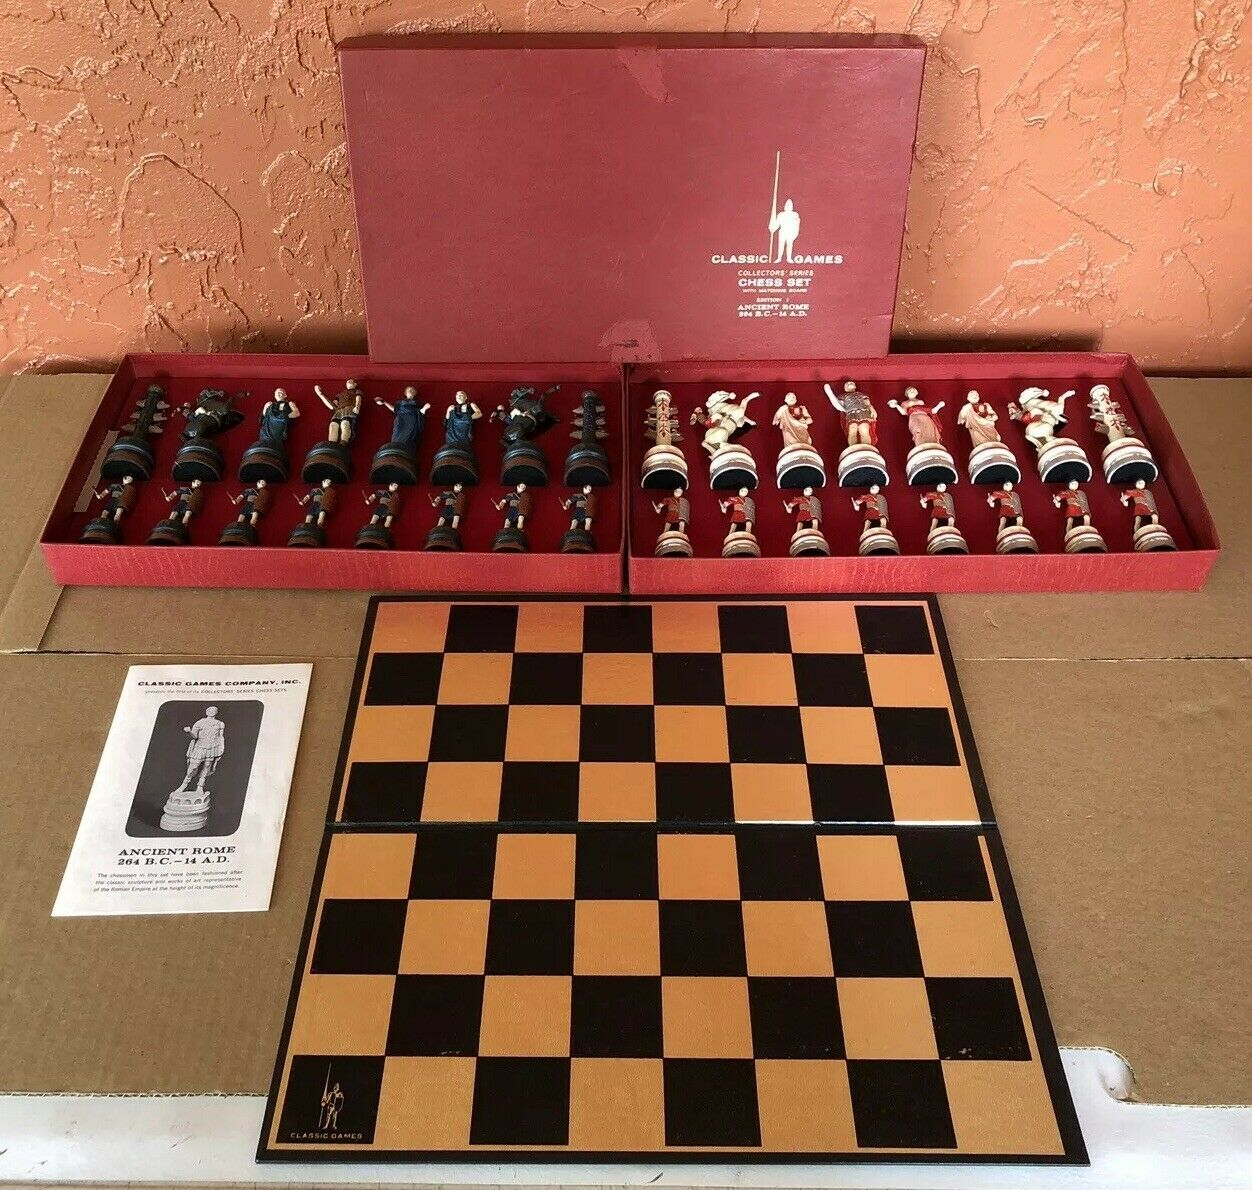 Classic Games Collector's Series Chess Set Ancient Rome Hand Painted Edition I